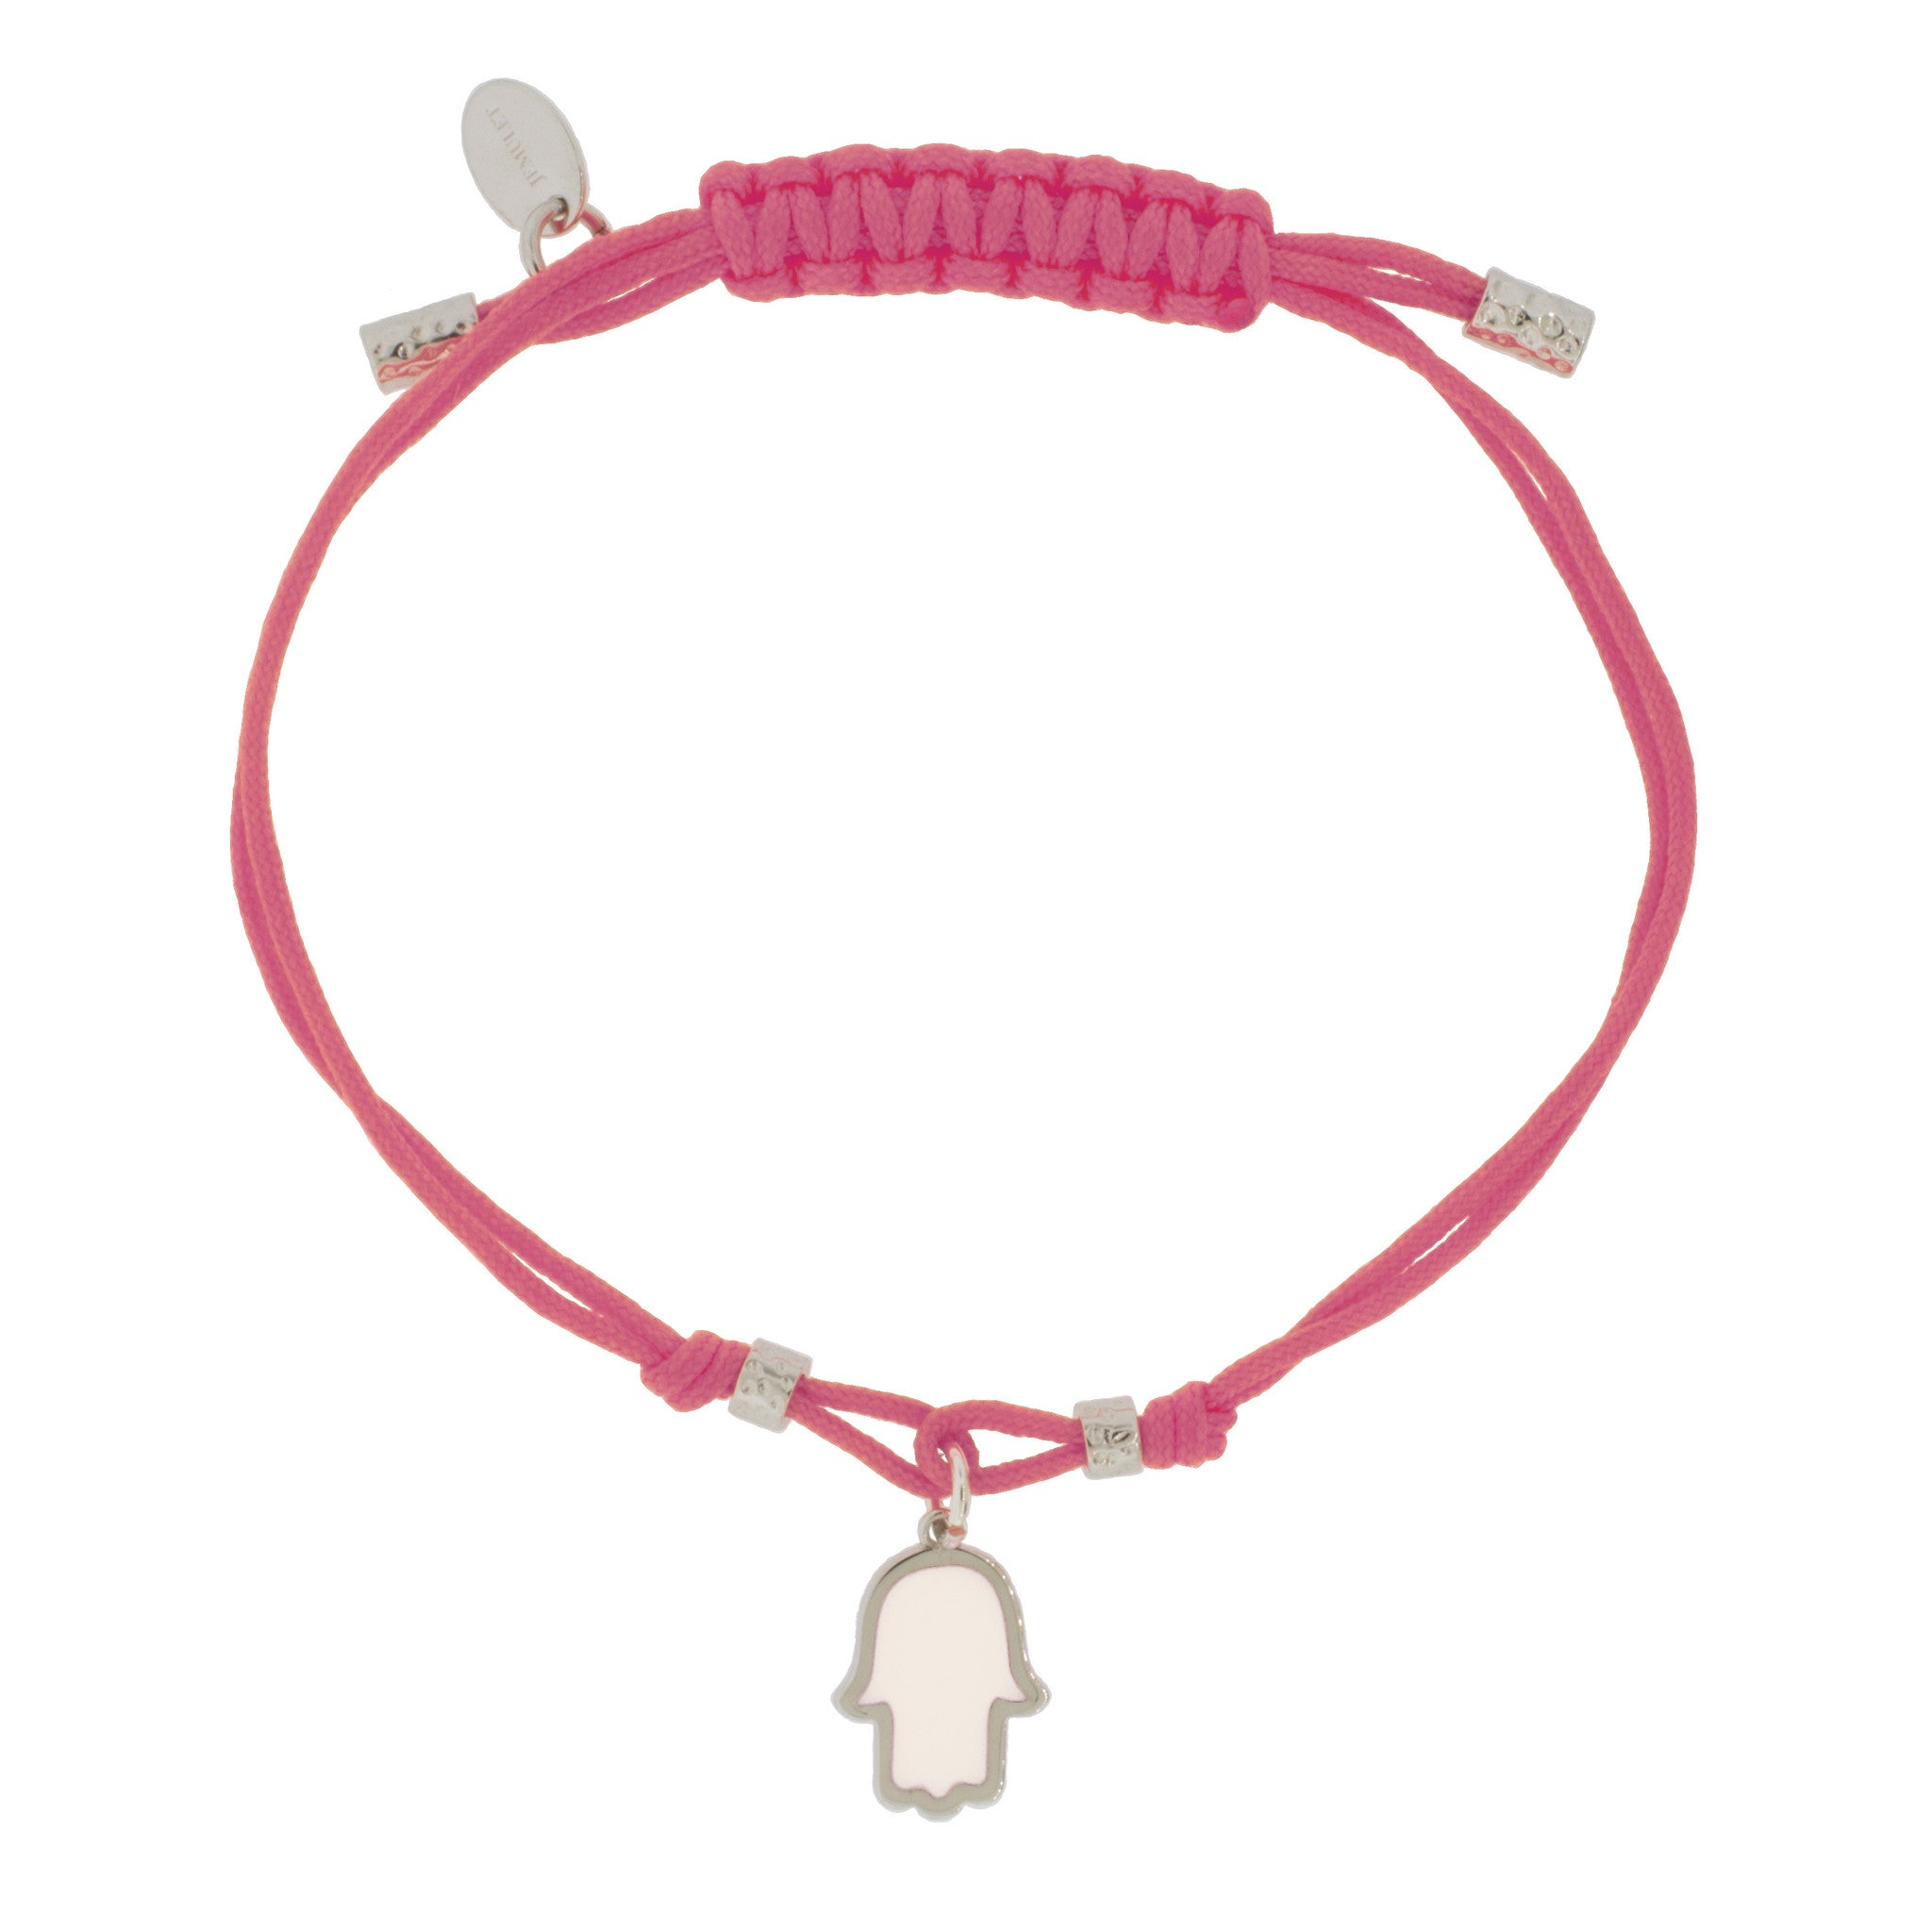 Touch of Luck Pendant Bracelet - Pink